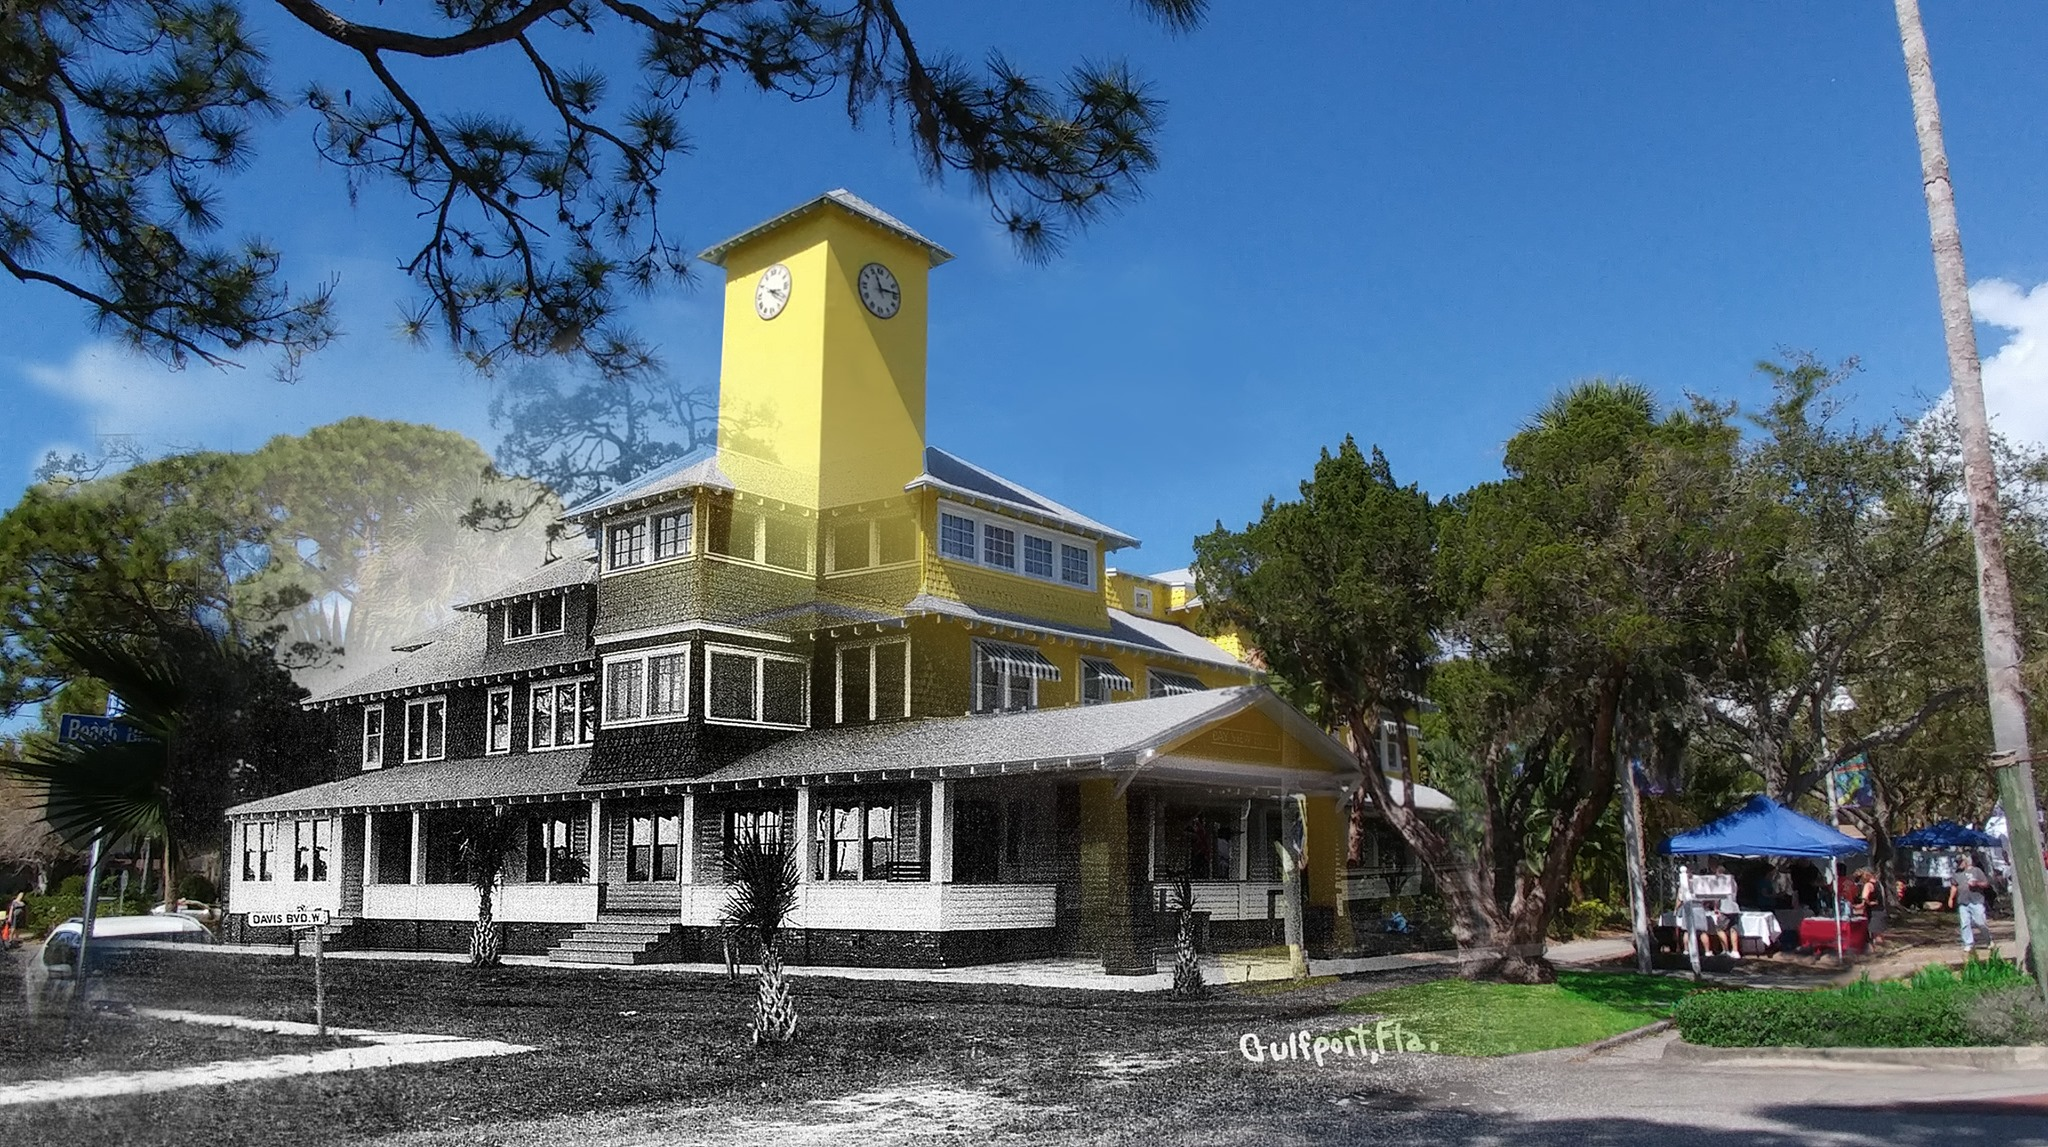 A photo of a large yellow building, half black & white, merged with a historical photo.